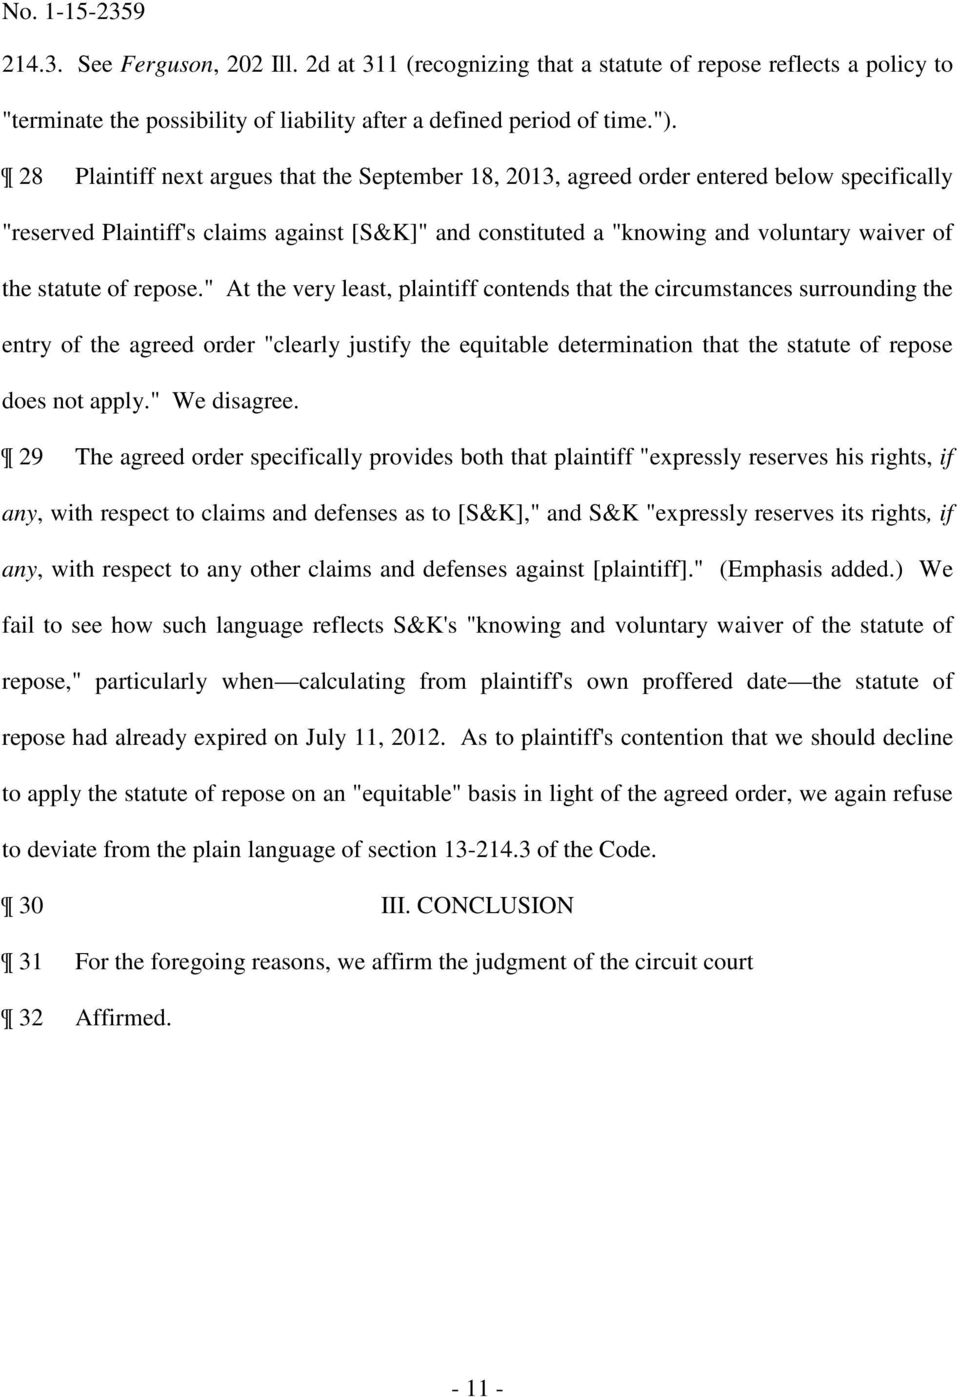 "28 Plaintiff next argues that the September 18, 2013, agreed order entered below specifically ""reserved Plaintiff's claims against [S&K]"" and constituted a ""knowing and voluntary waiver of the"